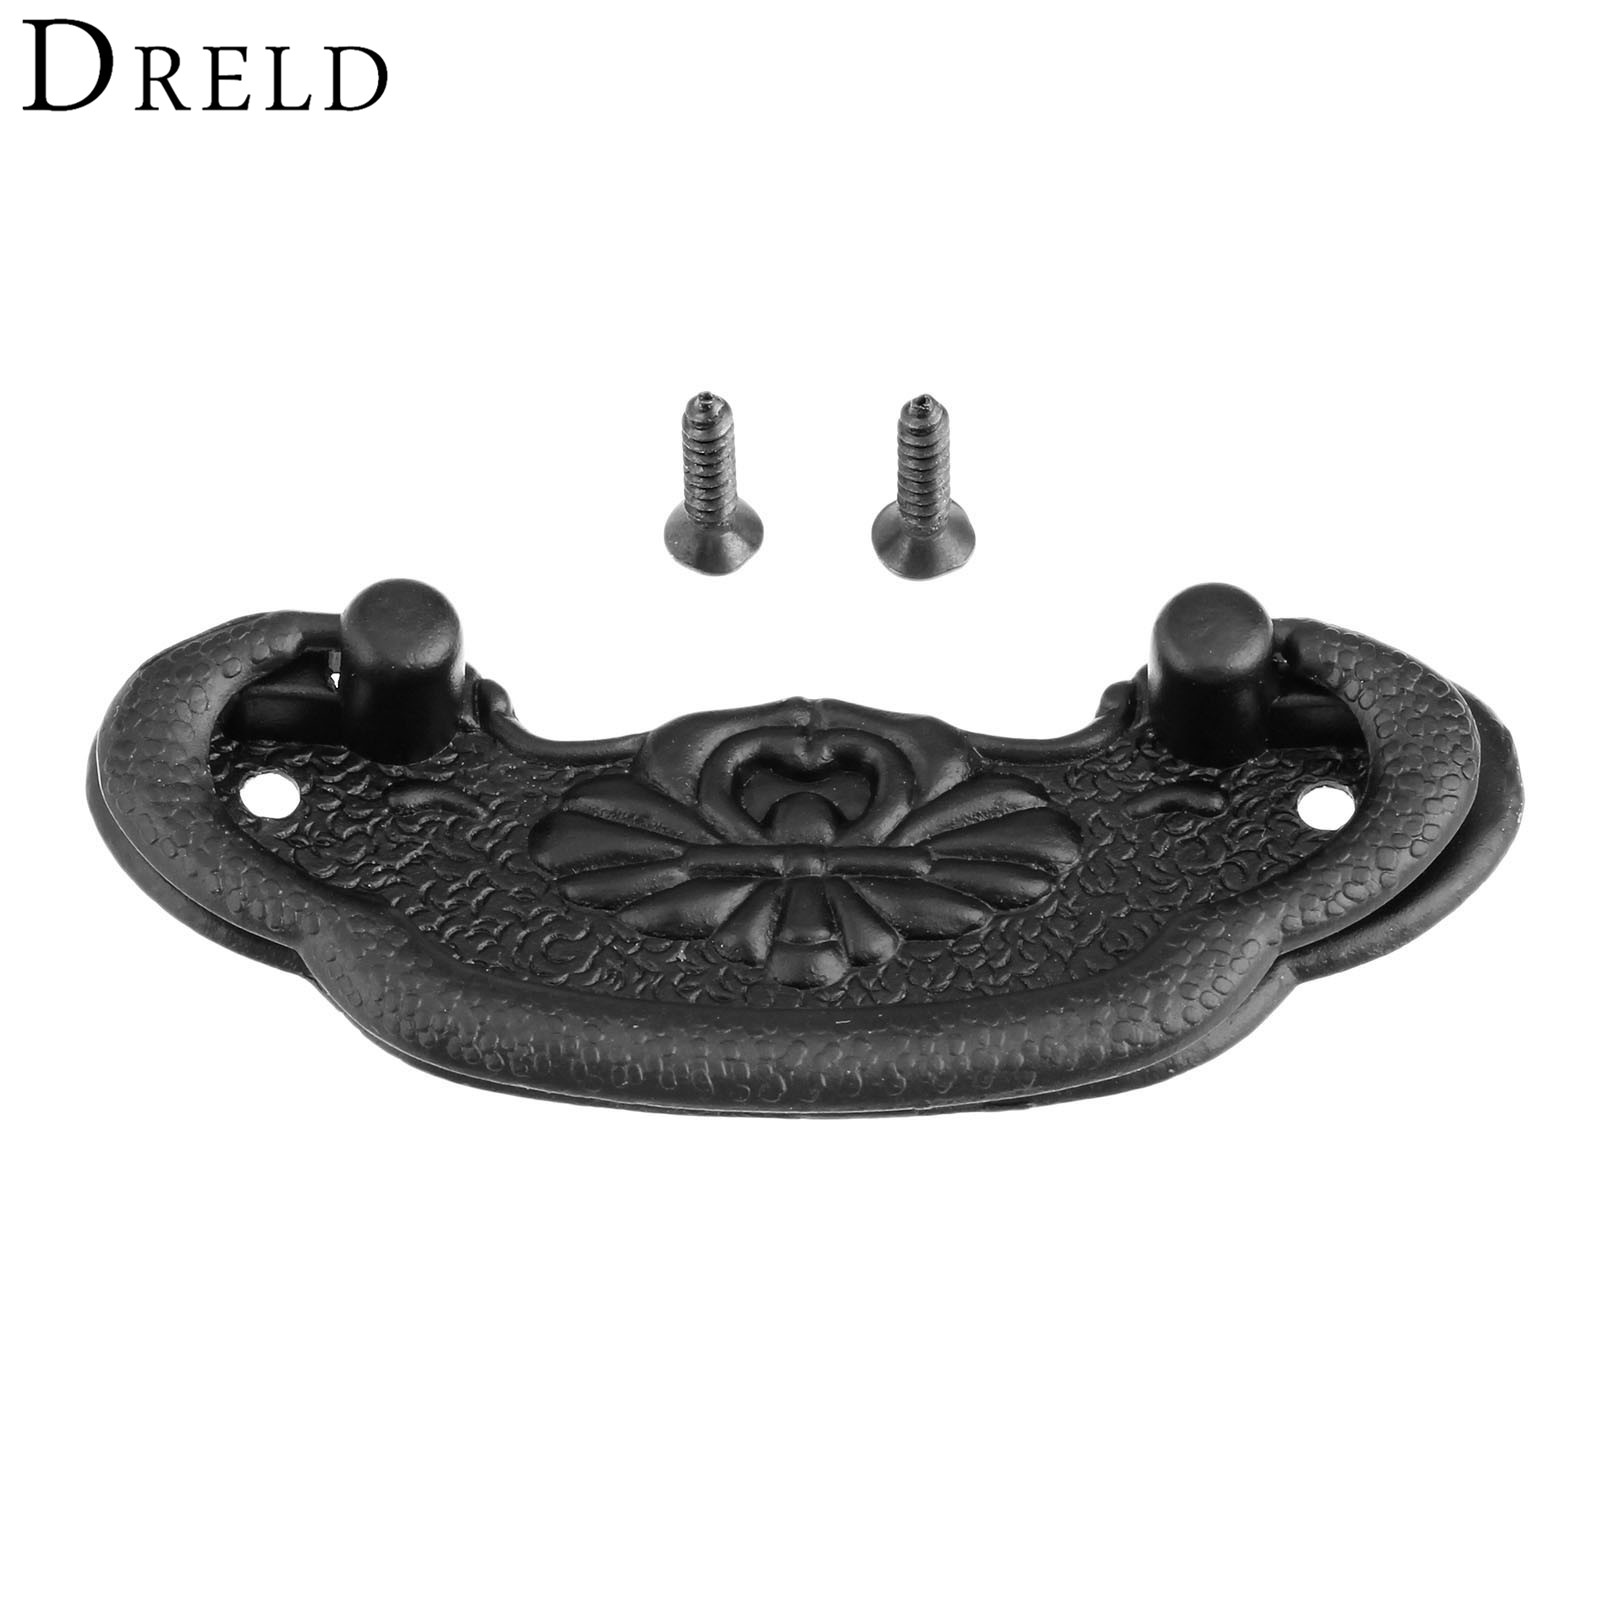 DRELD 1Pc Antique Furniture Handle Black Cabinet Knobs and Handles Kitchen Drawer Cupboard Pull Door Handles Furniture Fittings 10pcs pure copperkitchen cabinet handles and knobs black furniture handle for kitchen cabinet drawer pull 96mm 128mm single hole